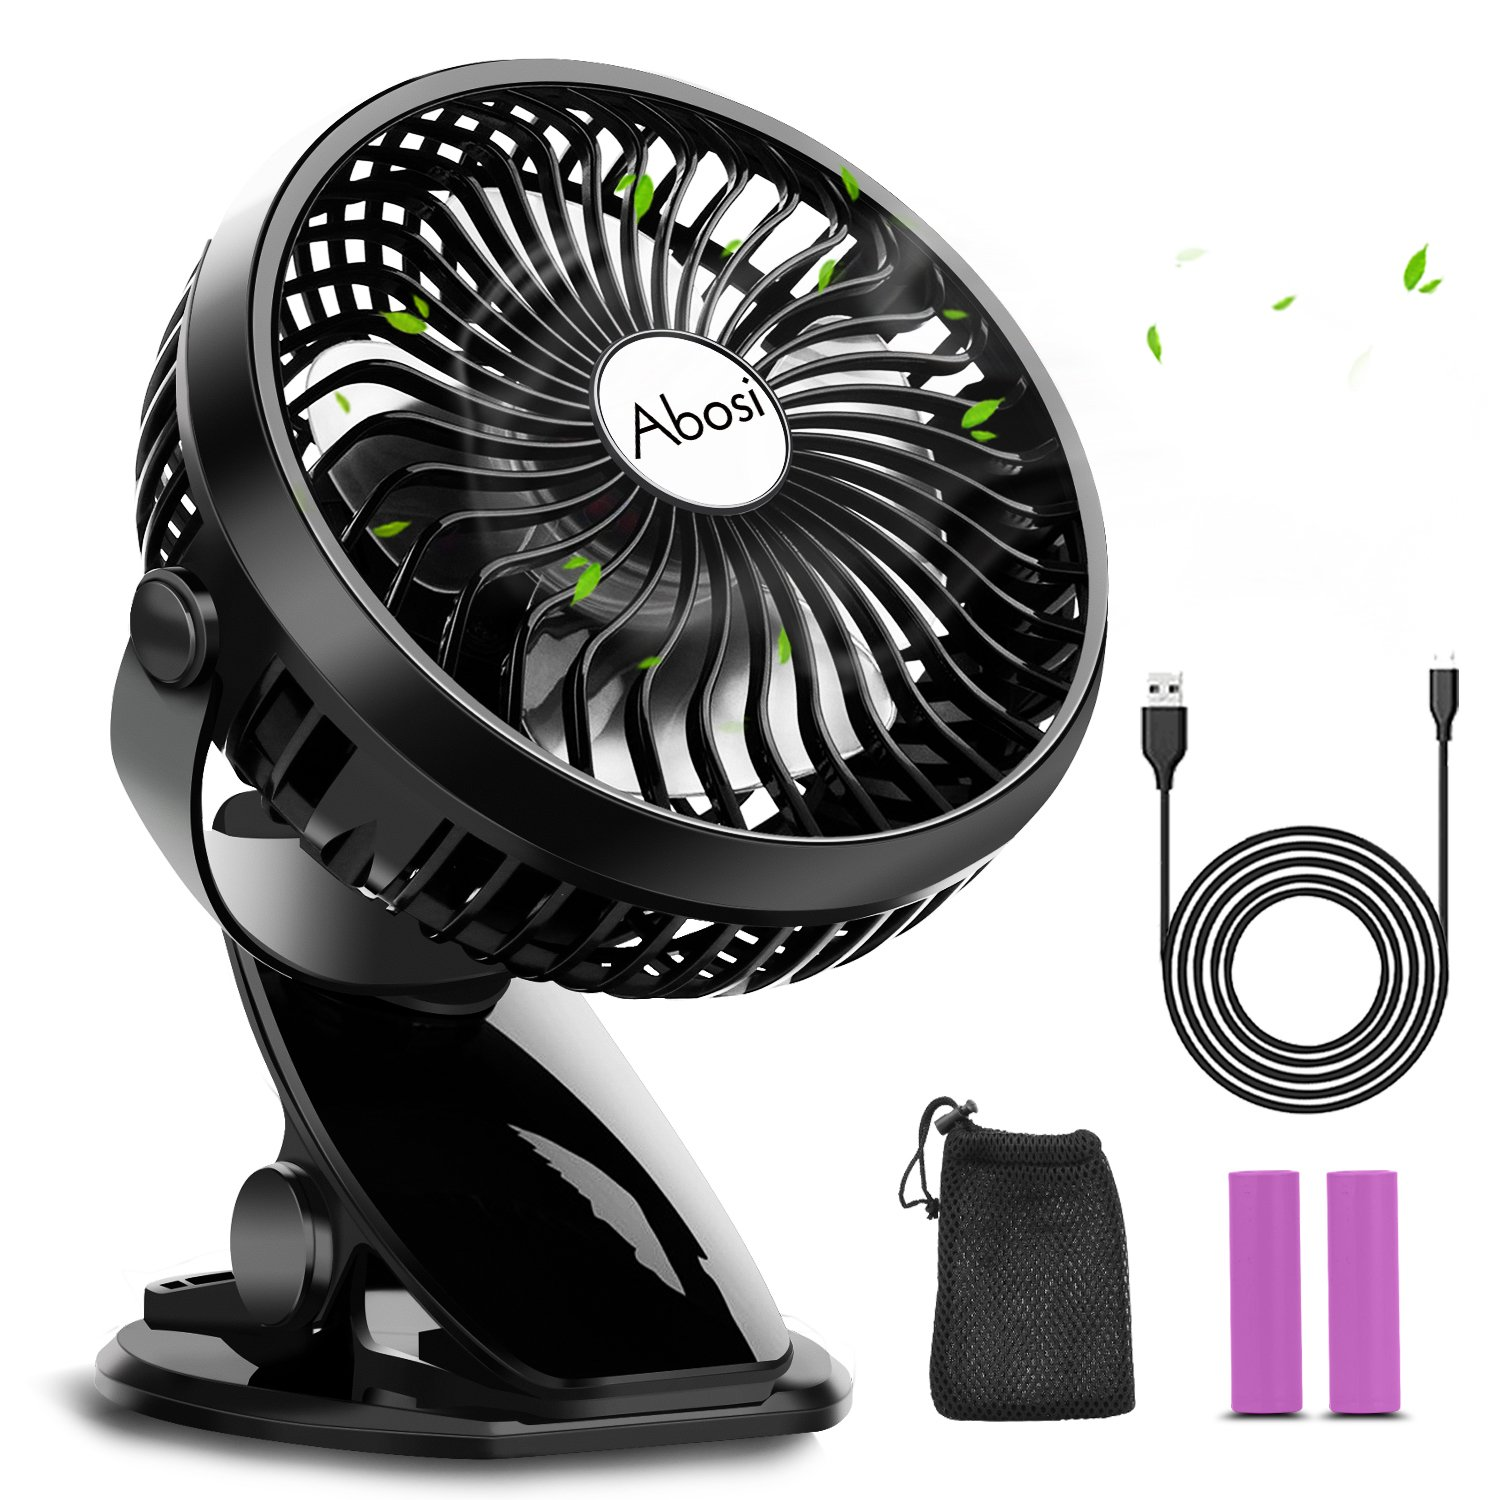 Stroller Fan,Clip On Fan,Rechargeable Battery or USB Operated,360°Rotation,Adjustable Speed, Mini Portable Cooling Desk Fan for Baby,Car Seat,Gym,Travel,Office(2 pcs 2000mAh Batteries Included)